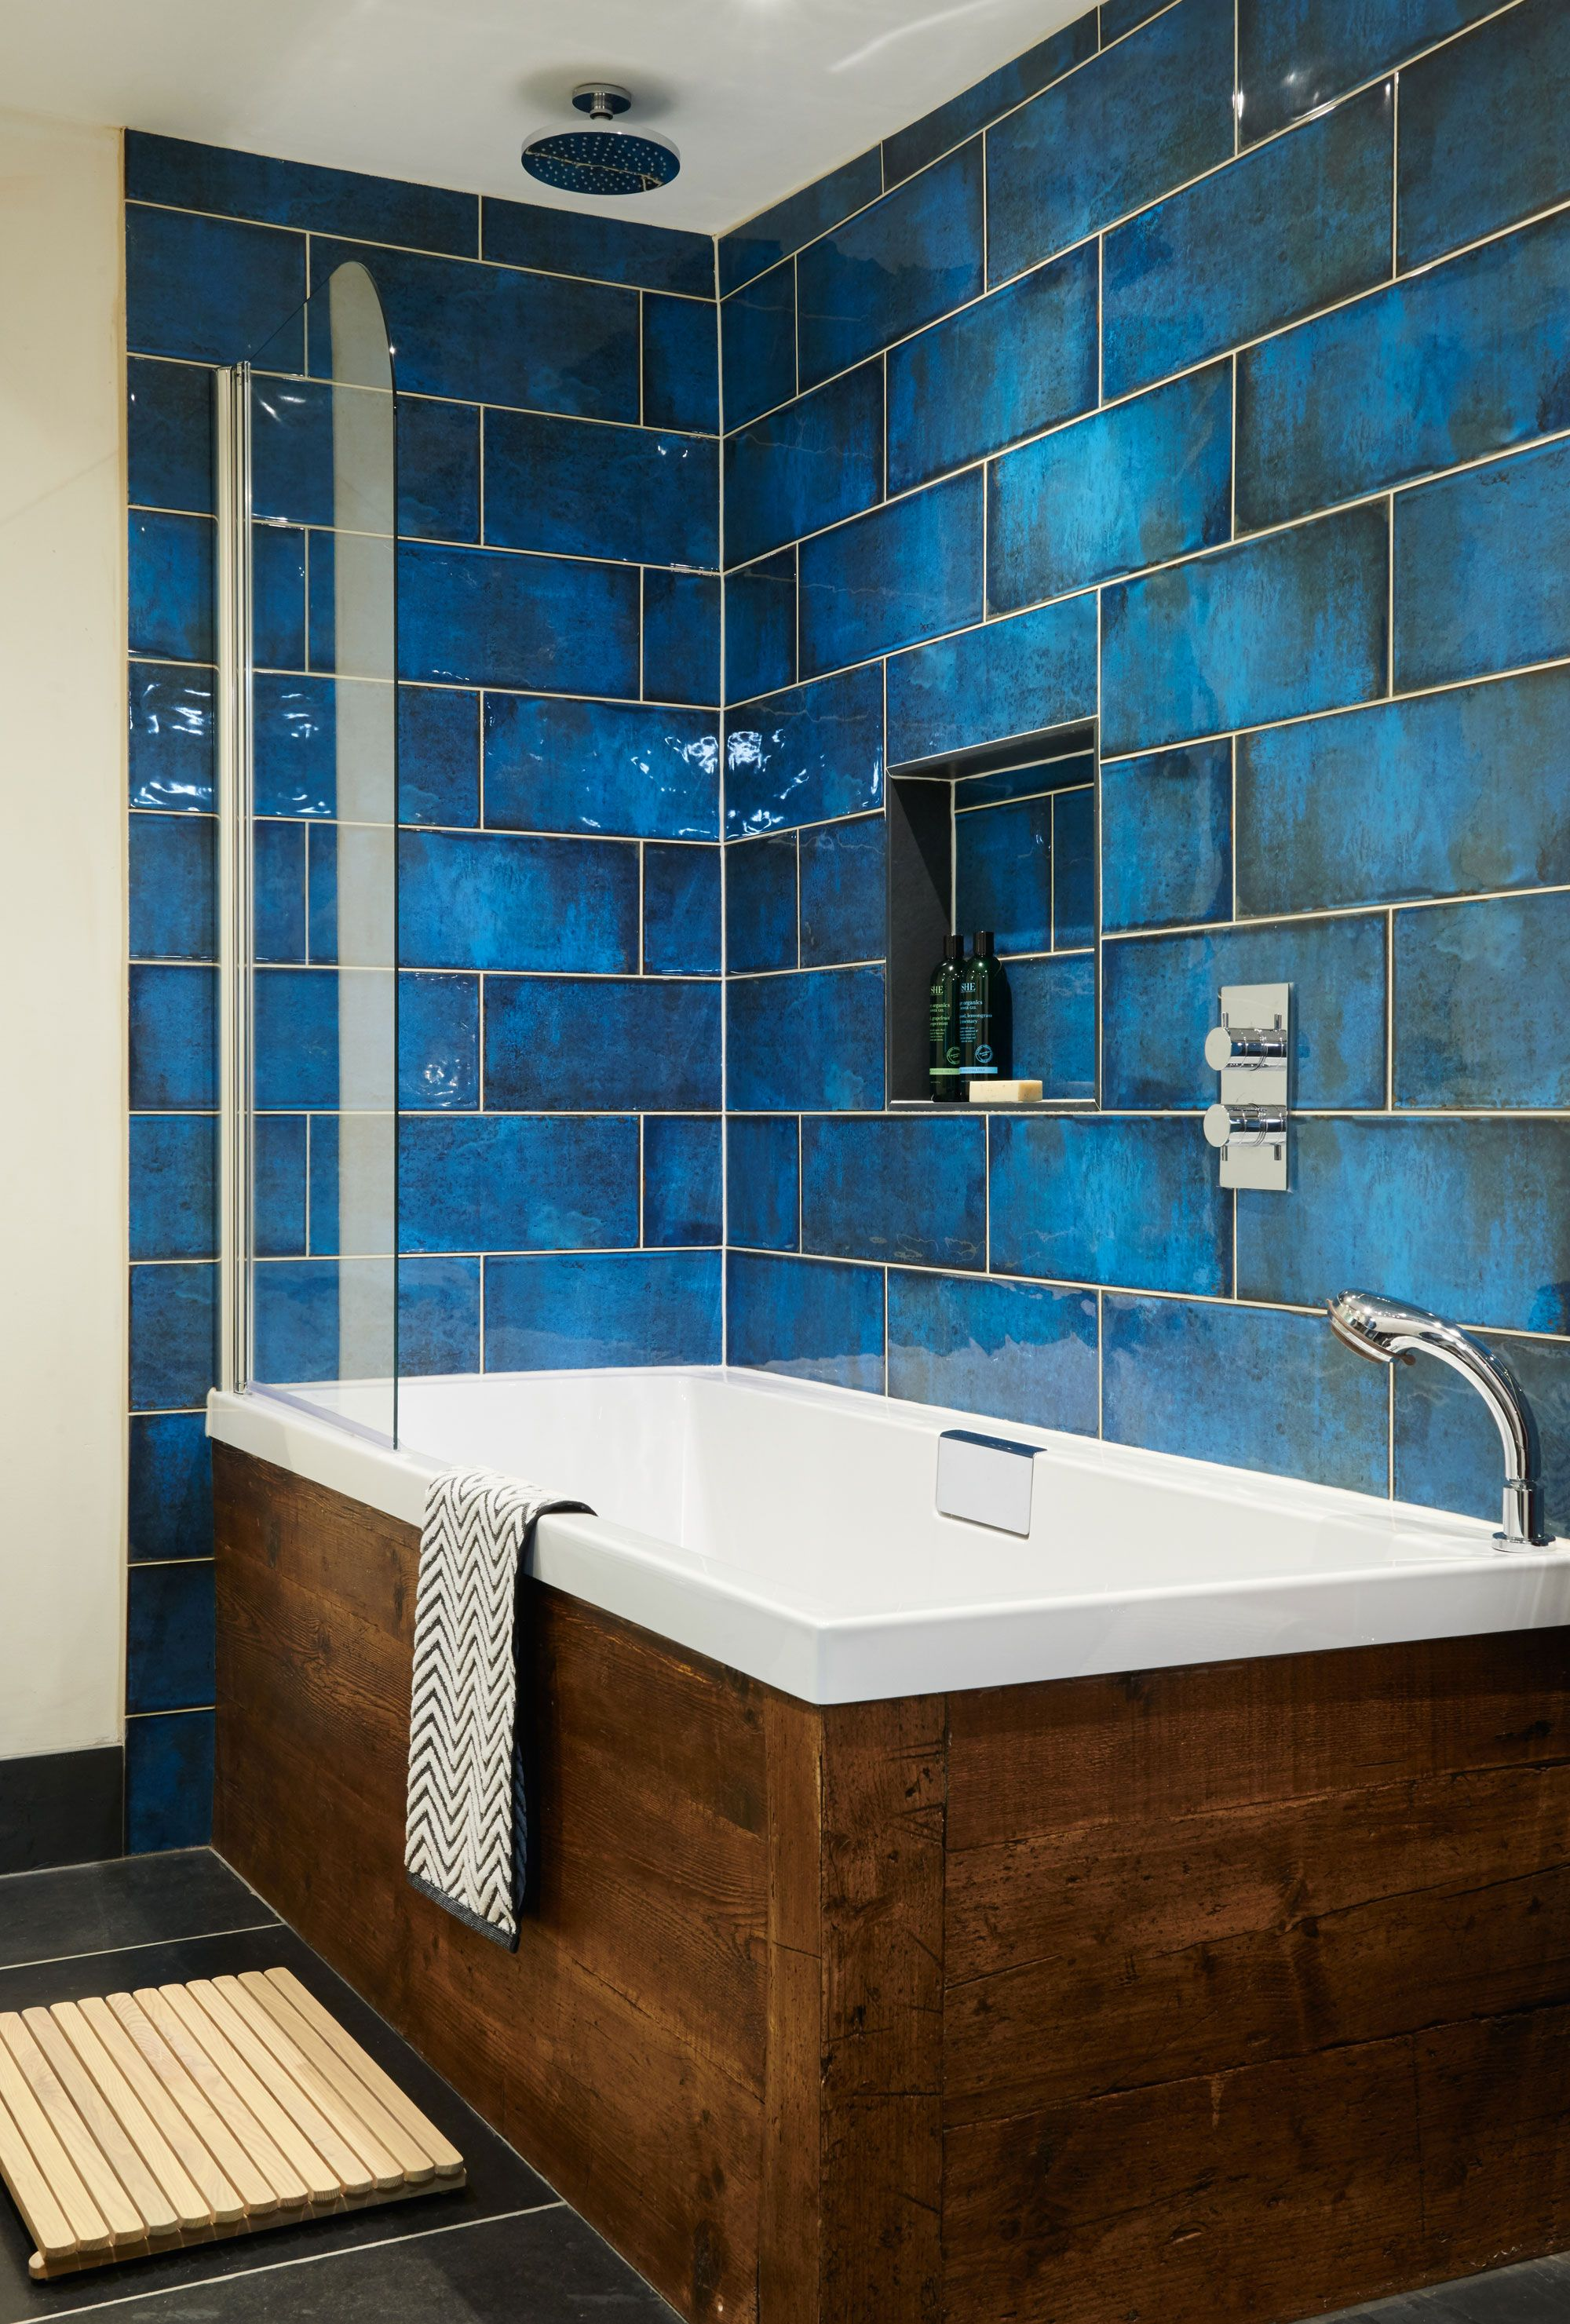 Montblanc Blue Ceramic Tile in 2018 | Decor - Bathroom | Pinterest ...